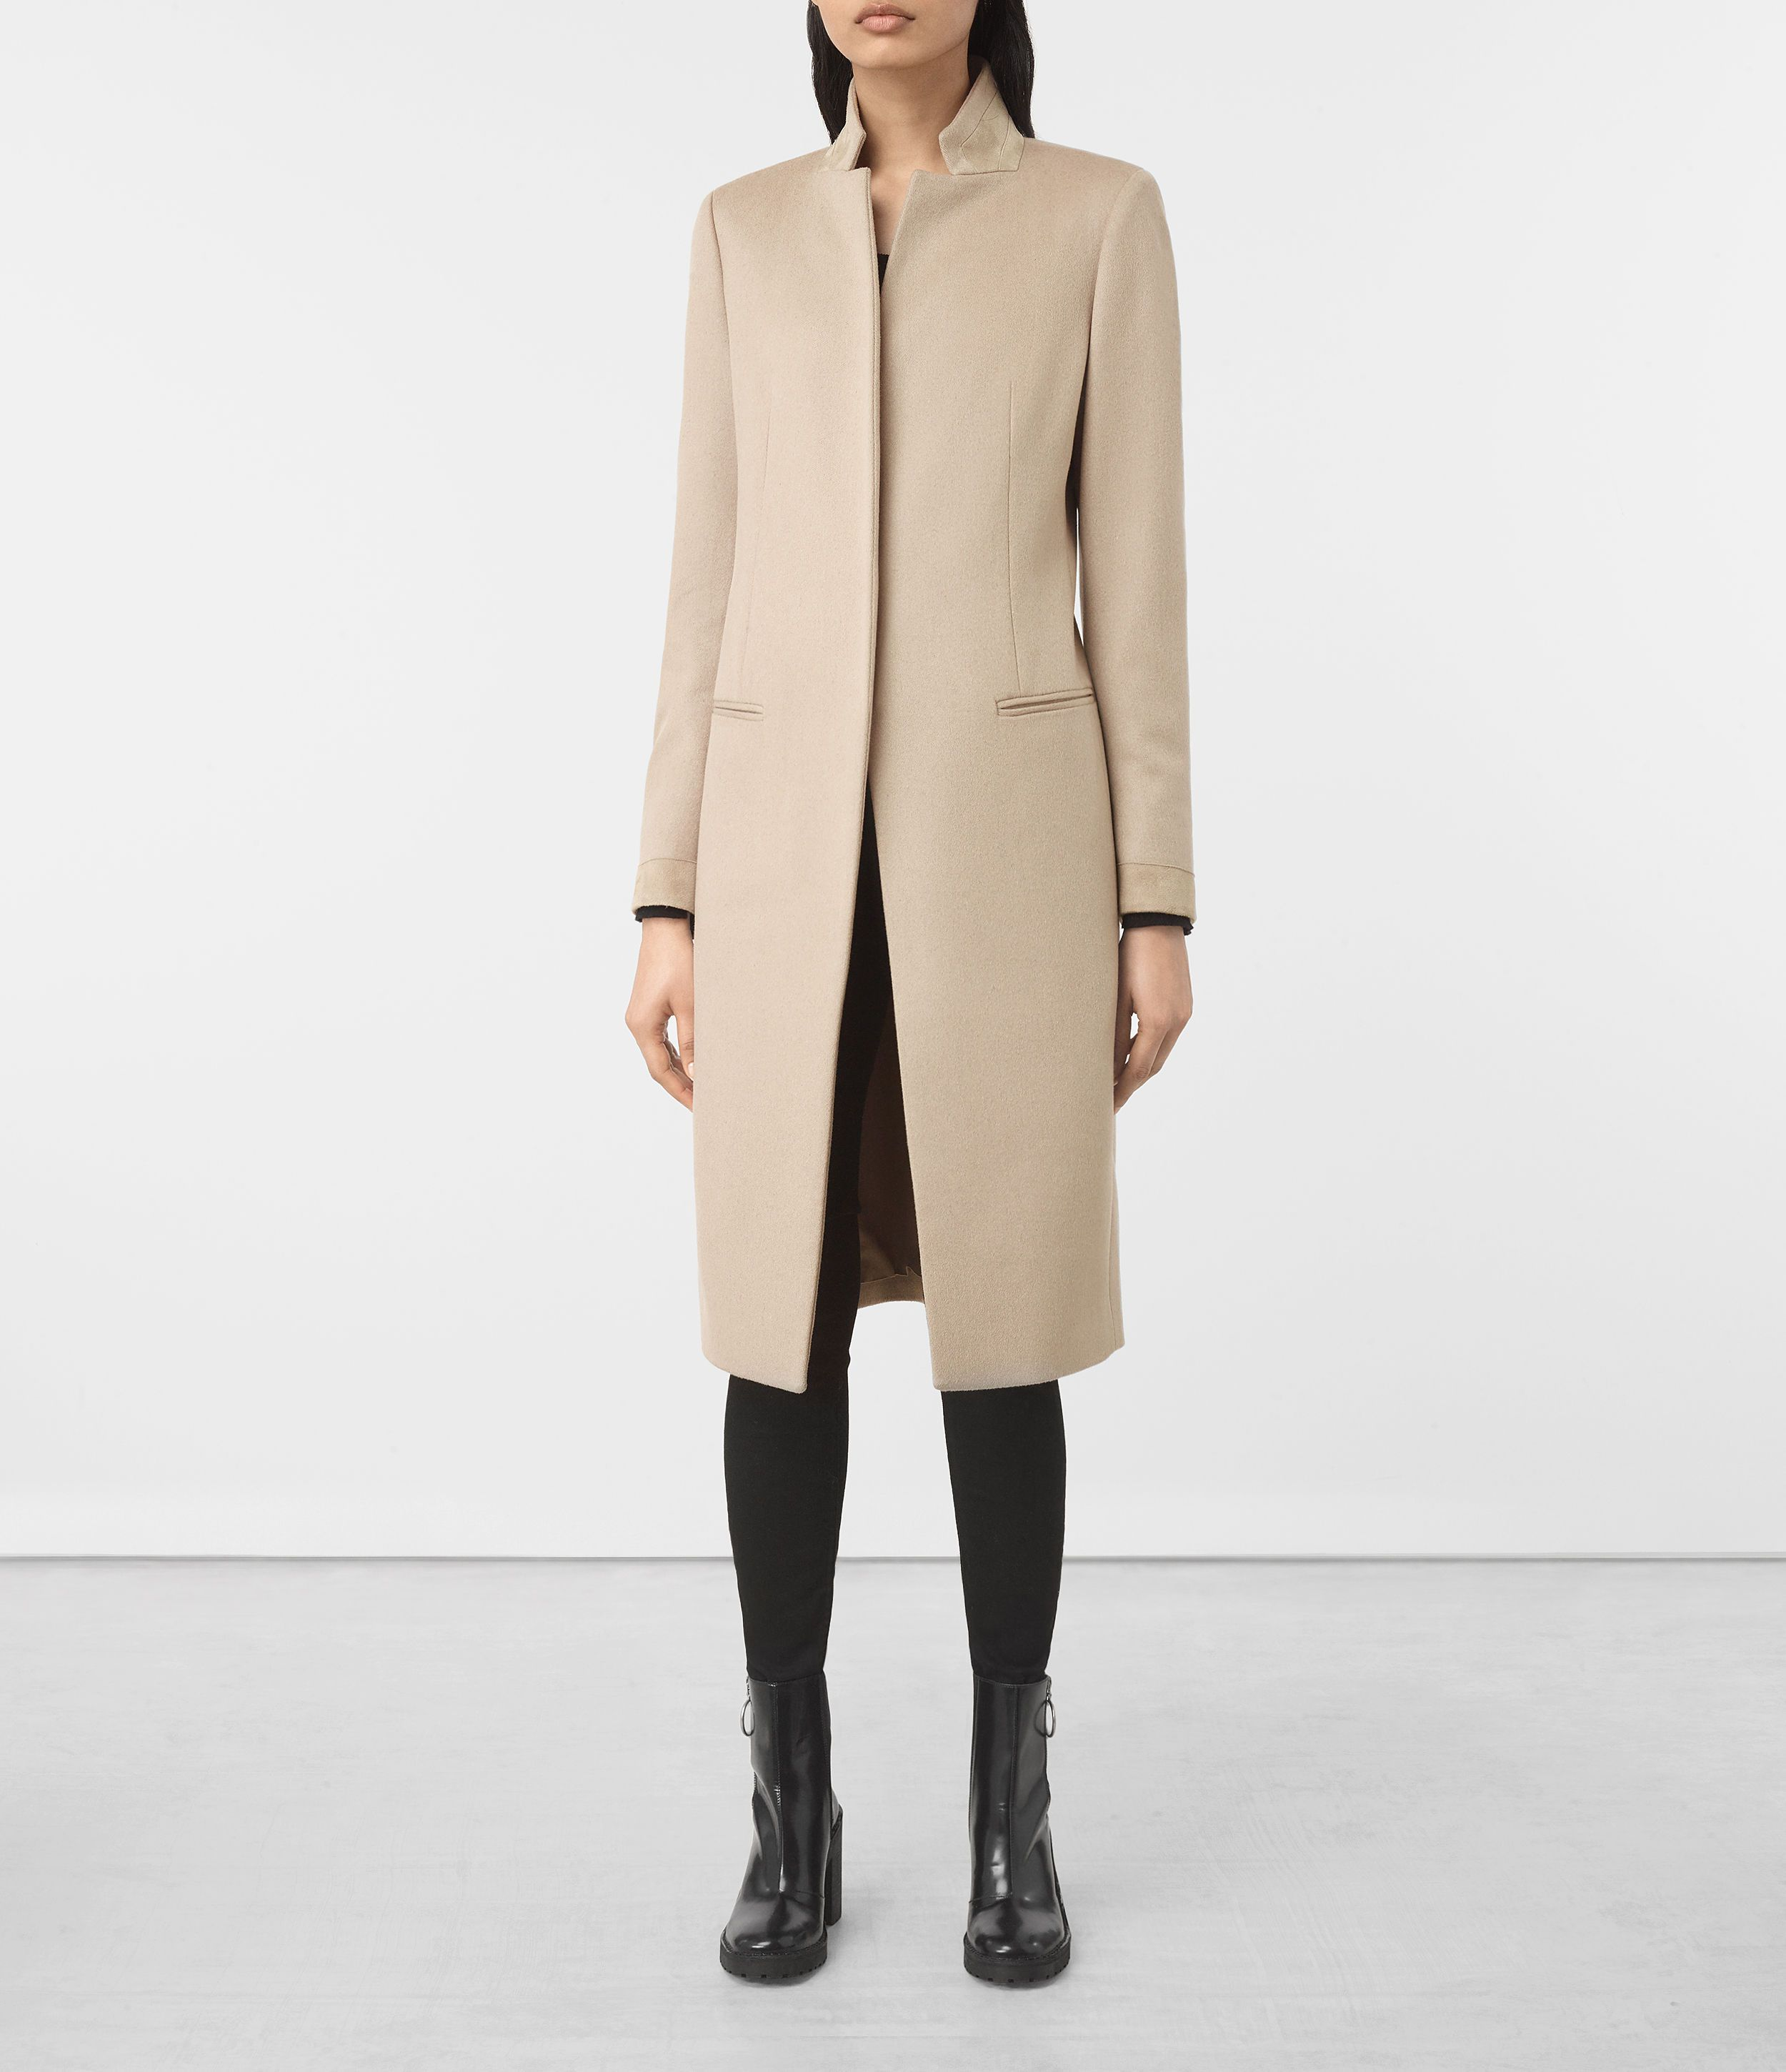 ALLSAINTS UK: Womens Odile Coat (SAND BROWN)